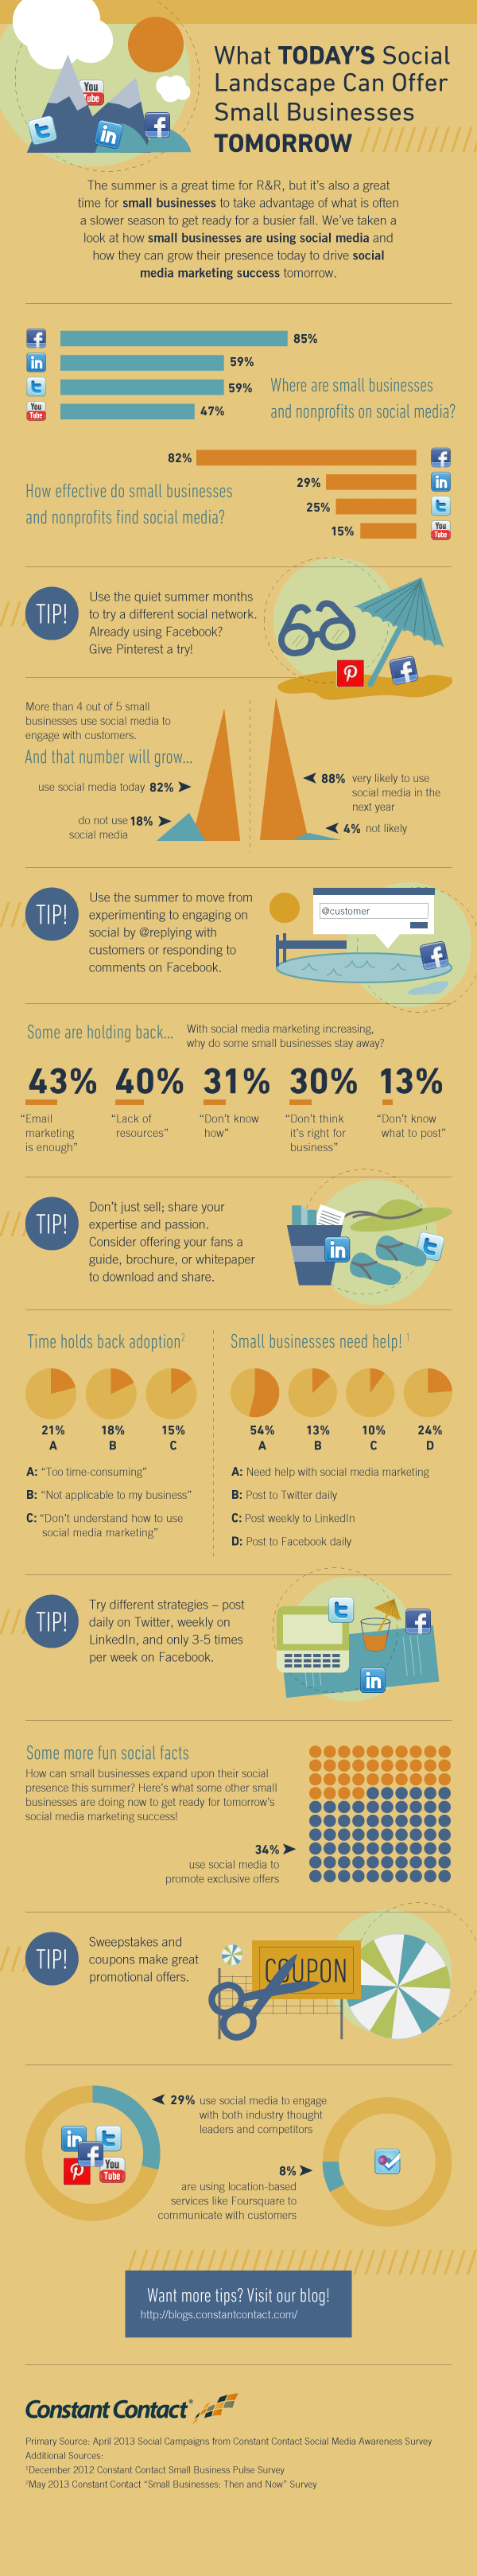 What Today Social Landscape Can Offer Small Businesses Tomorrow